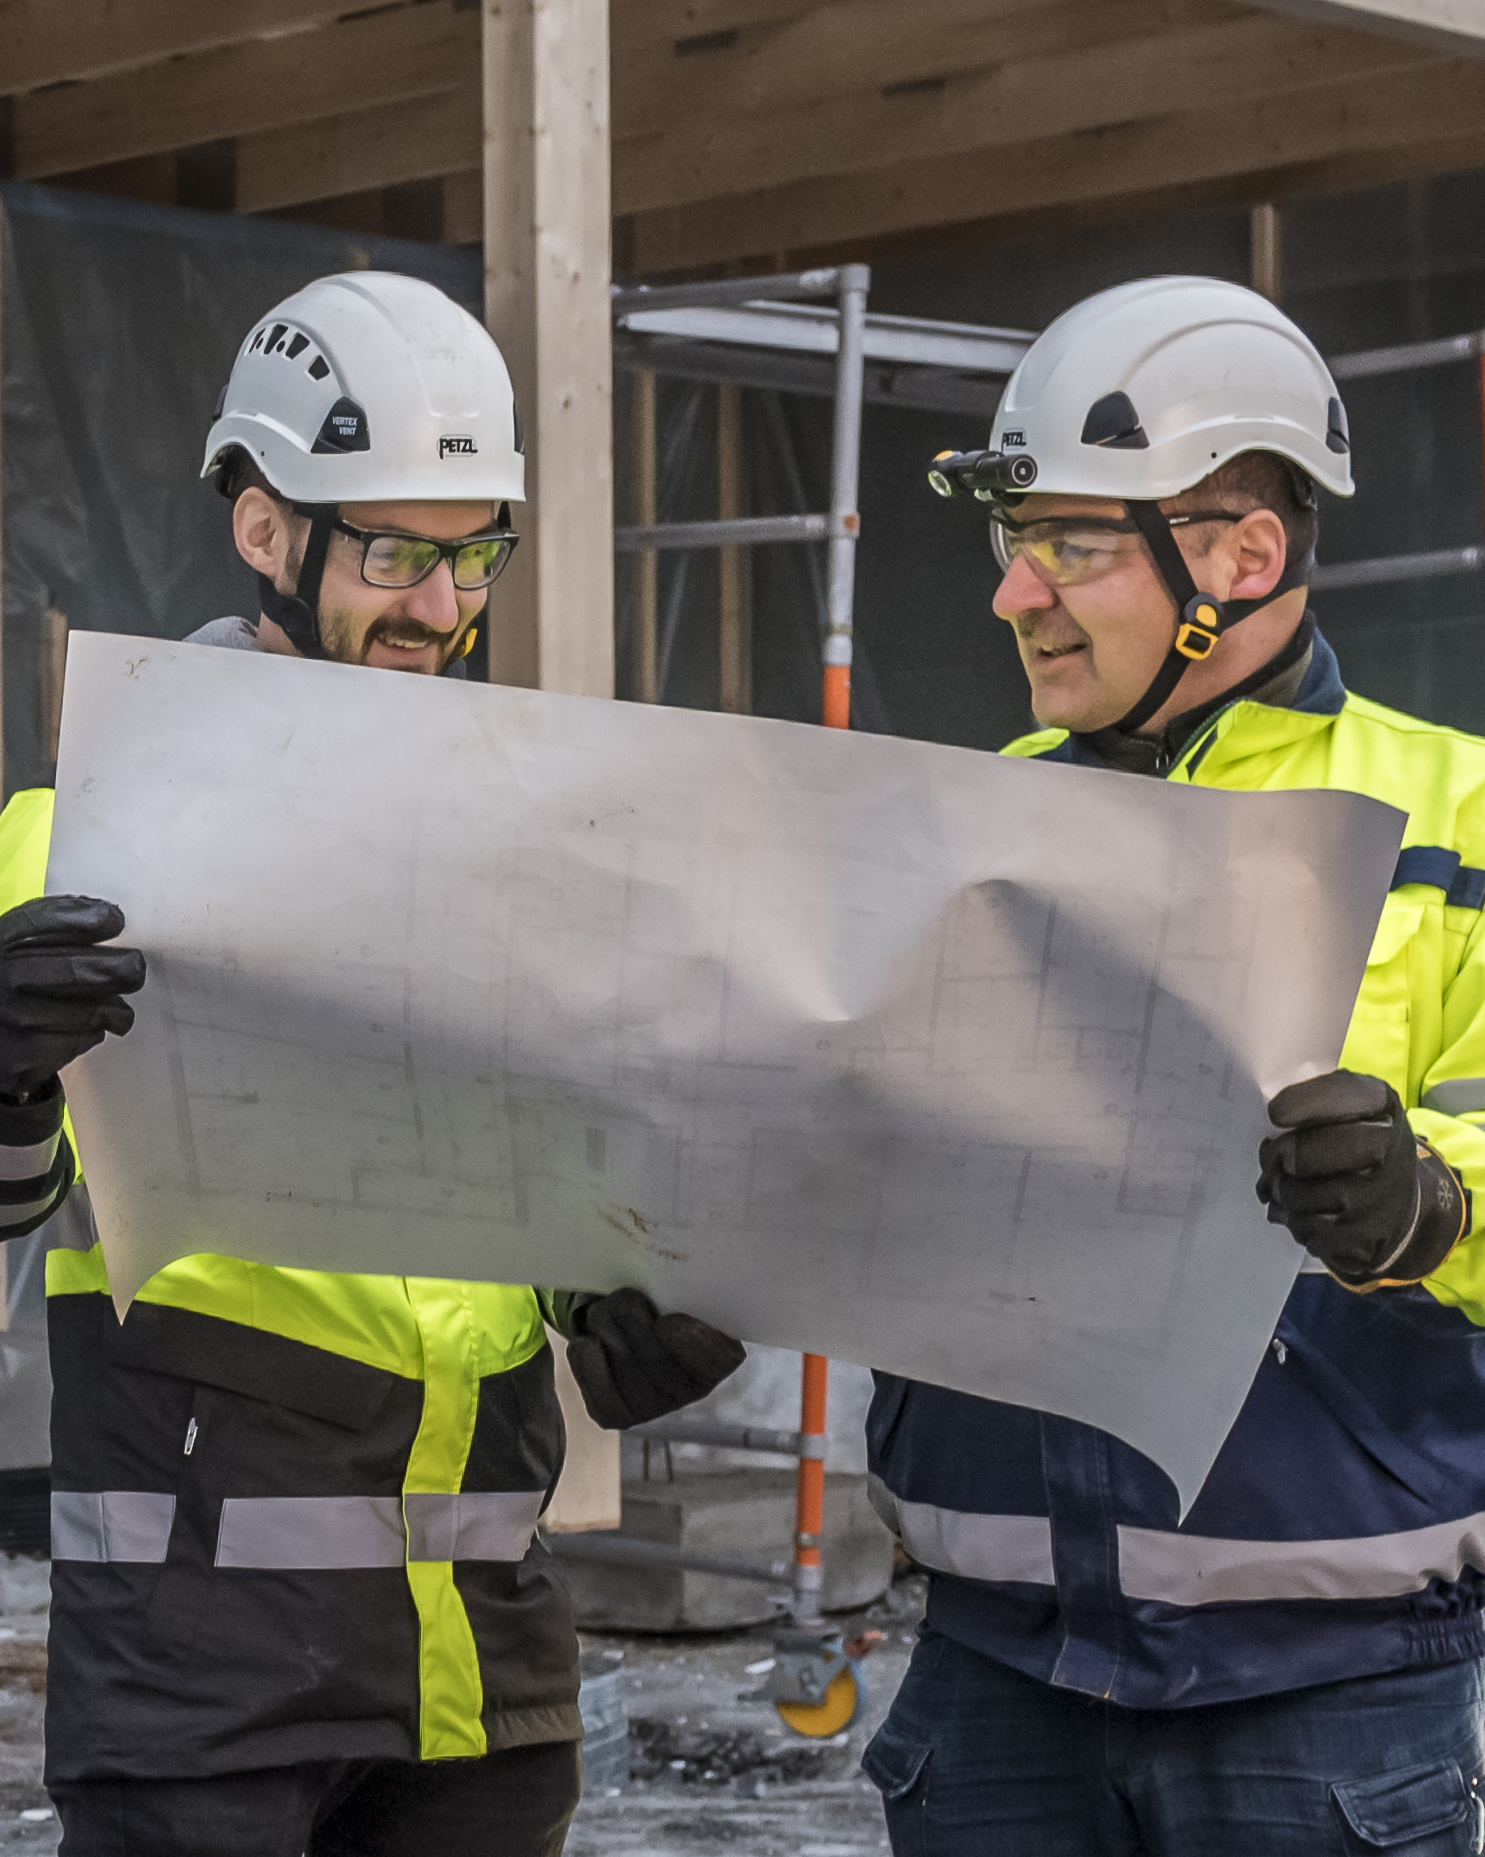 Two men in work clothes are reading a plan at a construction site.